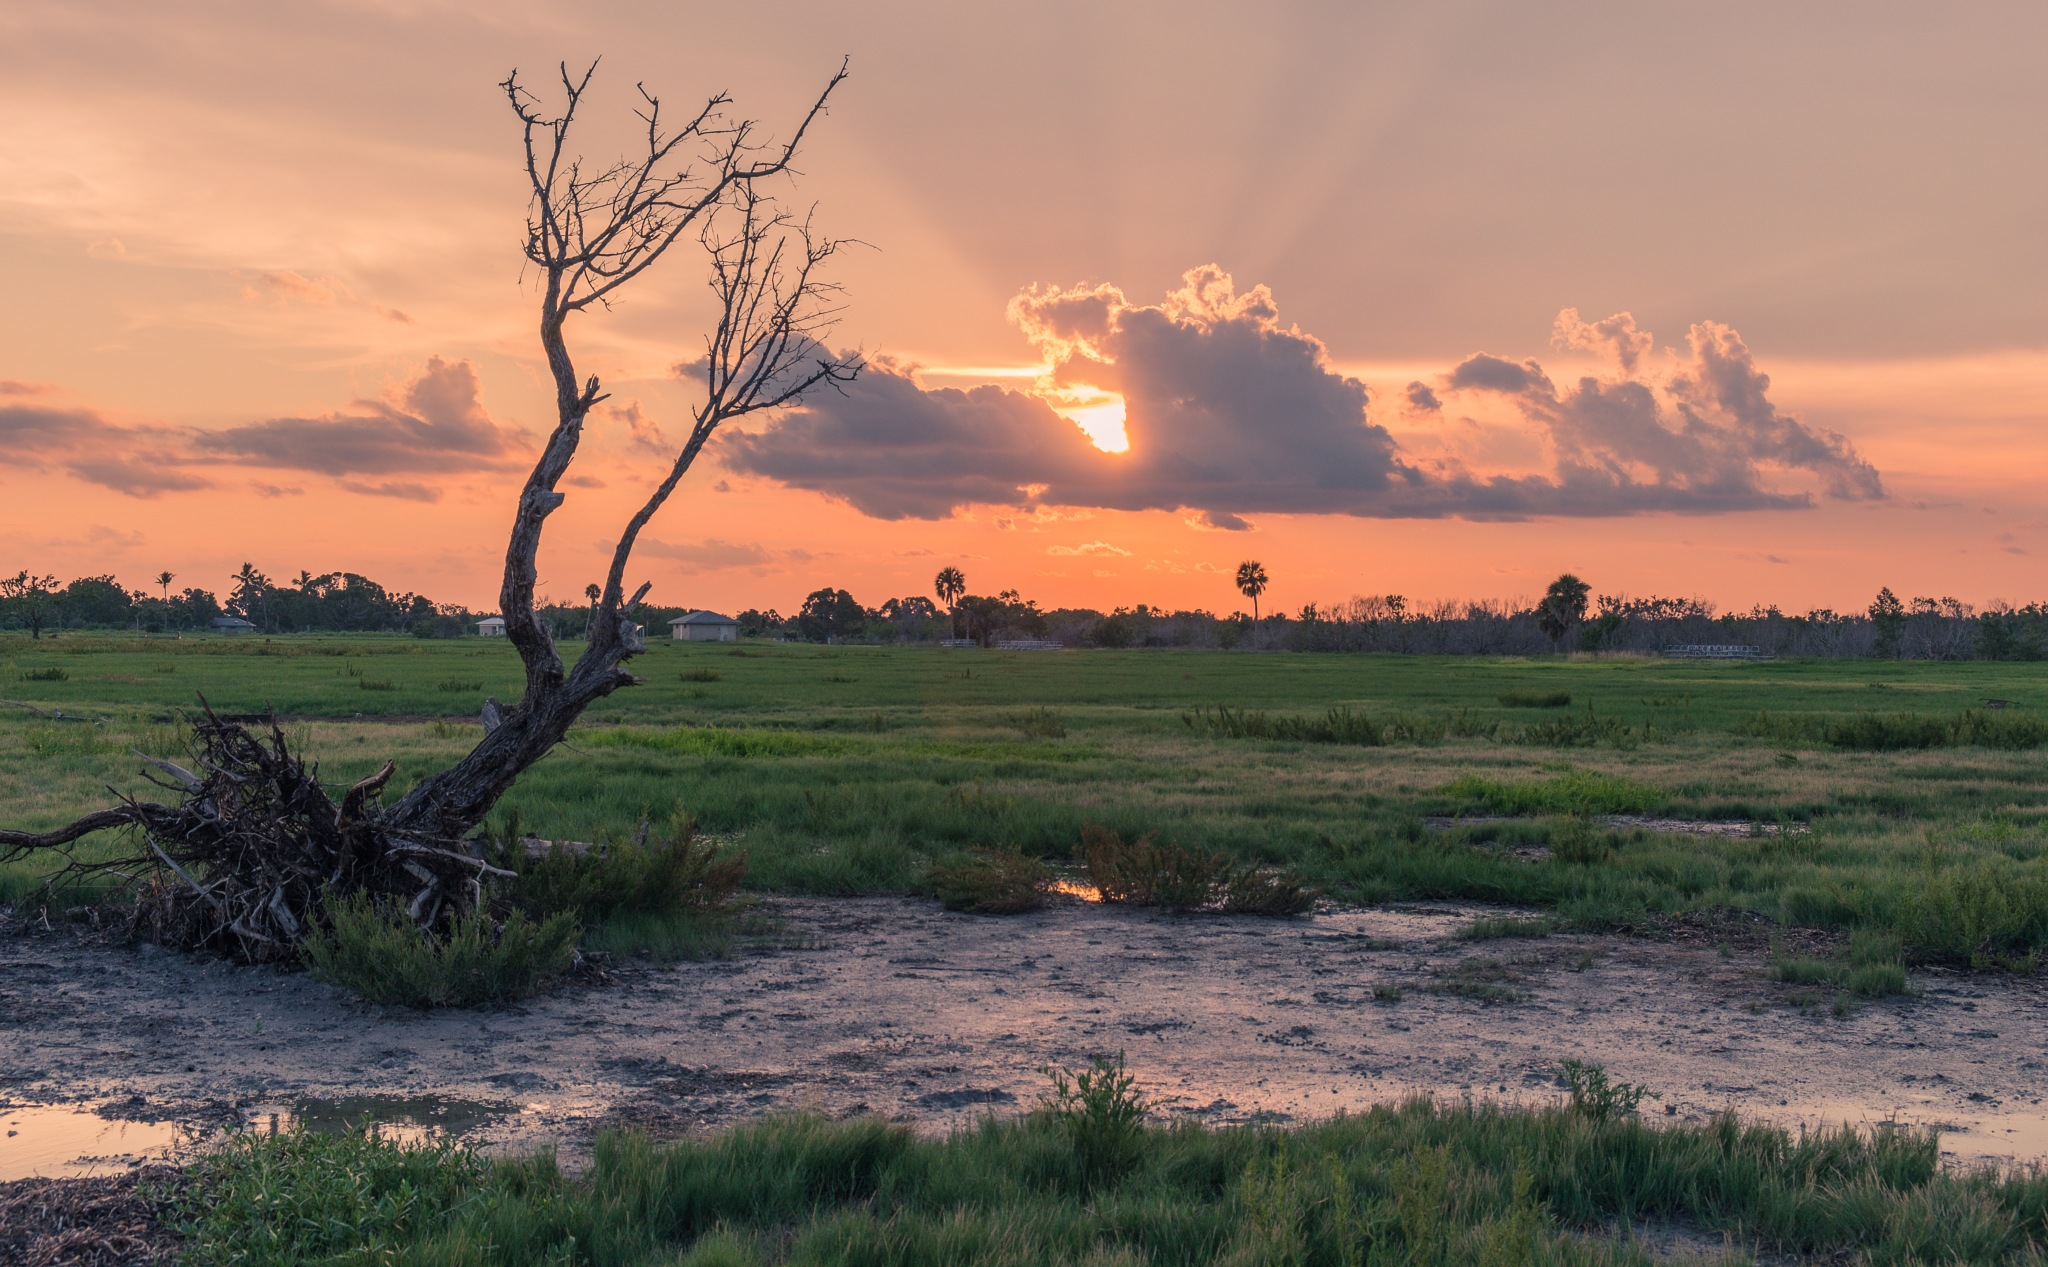 Photo in Landscape #america #clouds #dawn #environment #everglades #fauna #flora #florida #grass #green #homestead #horizon #horizontal #lake #landscape #marsh #national #natural #nature #nobody #outdoor #outdoors #outside #pad #park #path #pine #pines #pond #reflections #river #sky #south #sun #sunrise #sunset #swamp #tourism #trail #travel #trees #twilight #united #usa #view #water #wet #wetlands #wild #wildlife